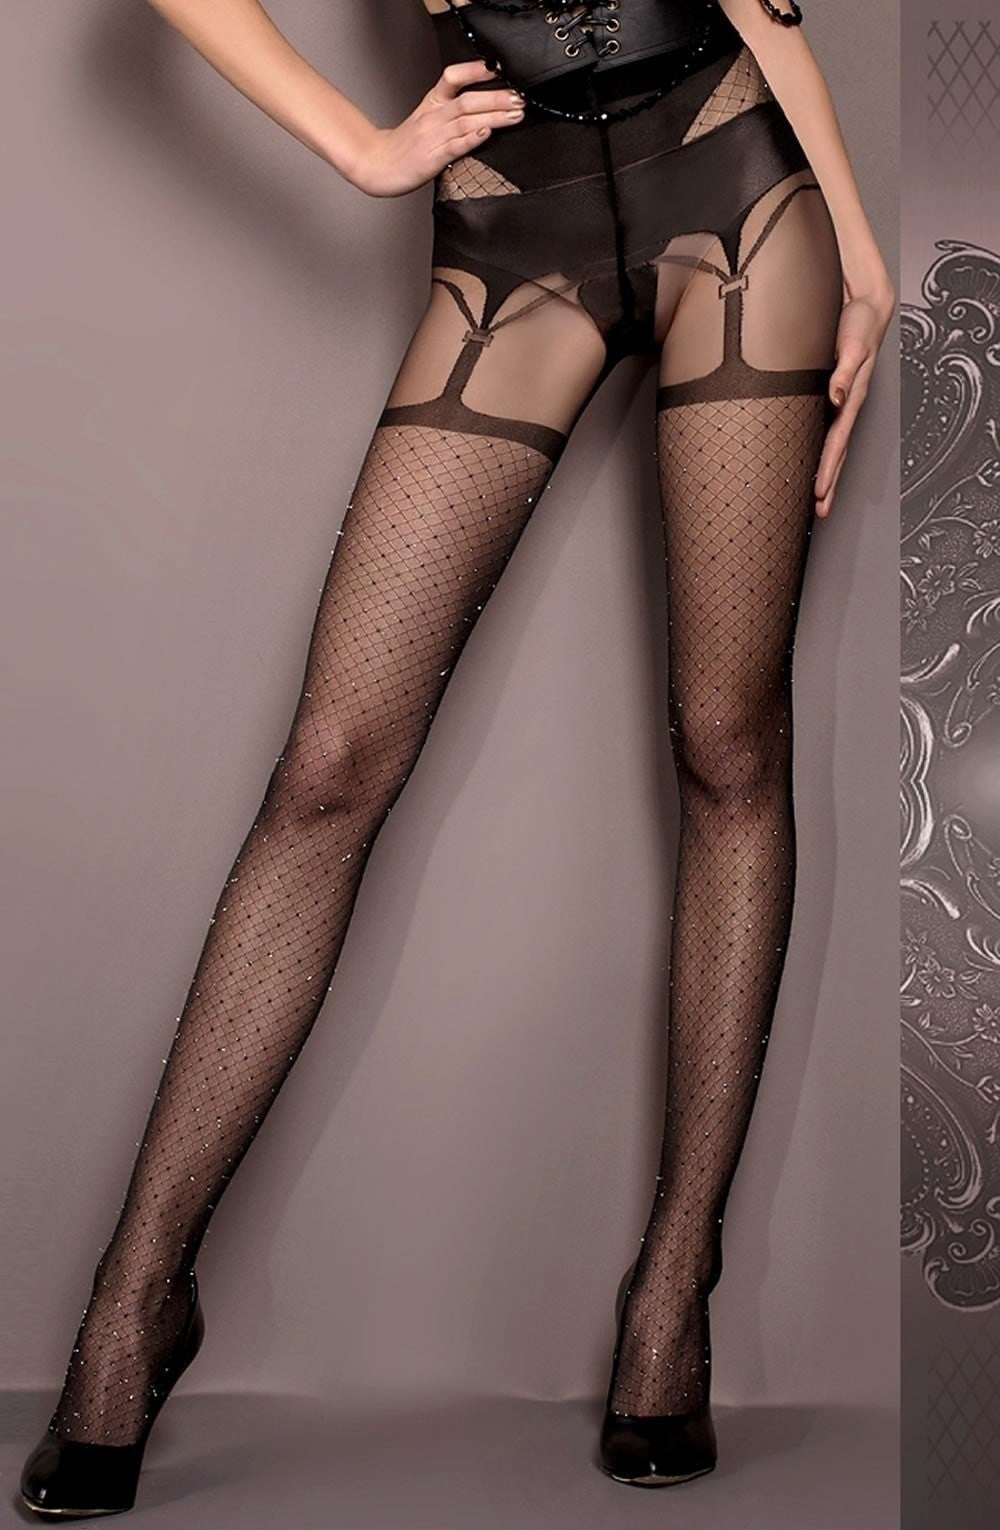 Ballerina Tights 411 (Black) - Tights - Ballerina - Charm and Lace Boutique